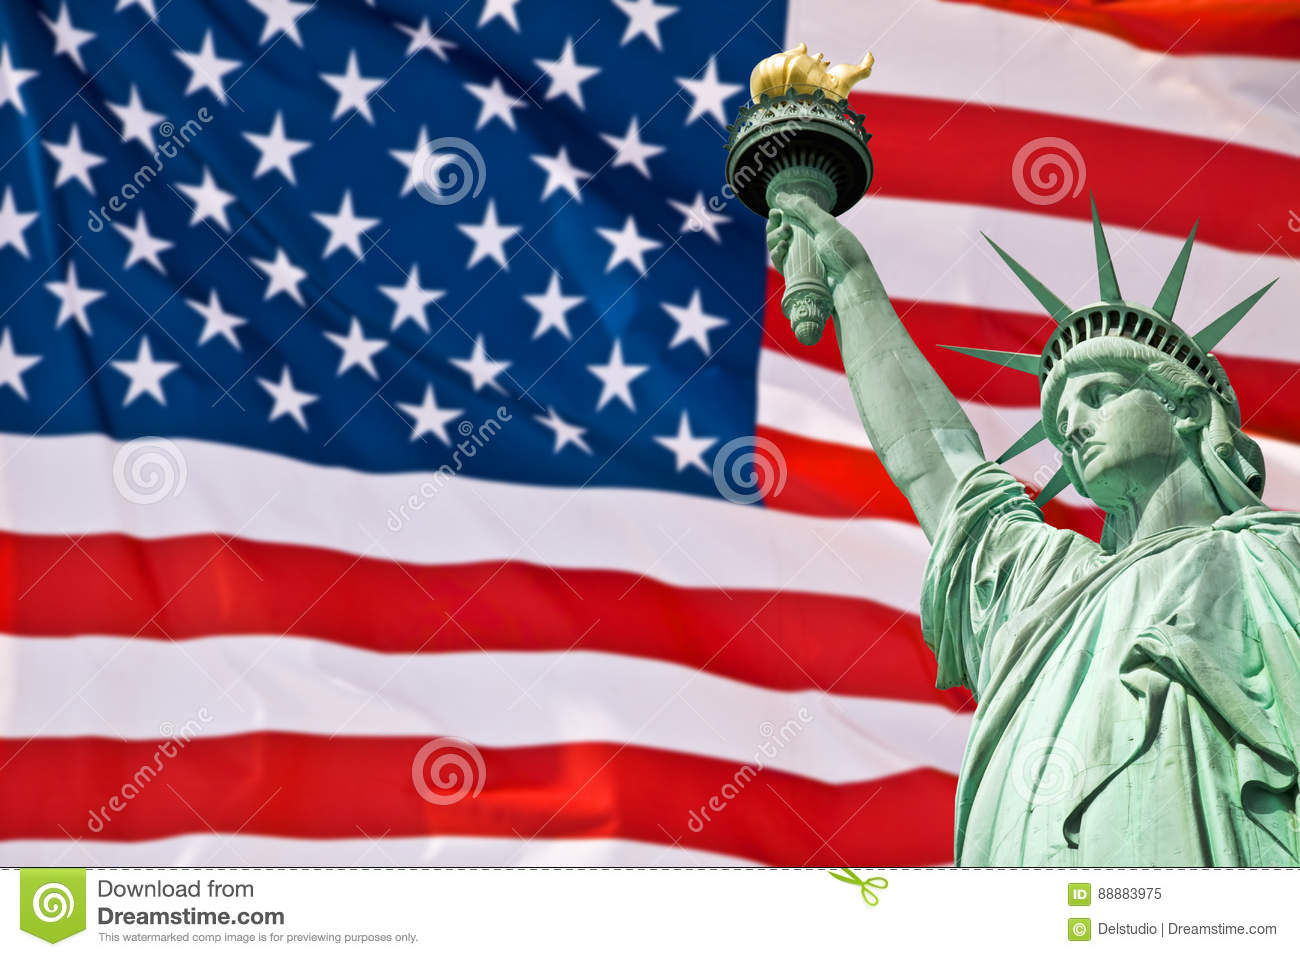 the principles of the american dream and the history of the immigration to the united states Chinese immigration to the united states is part of this  they pursued their american dream by working  chinese americans dictionary of american history.